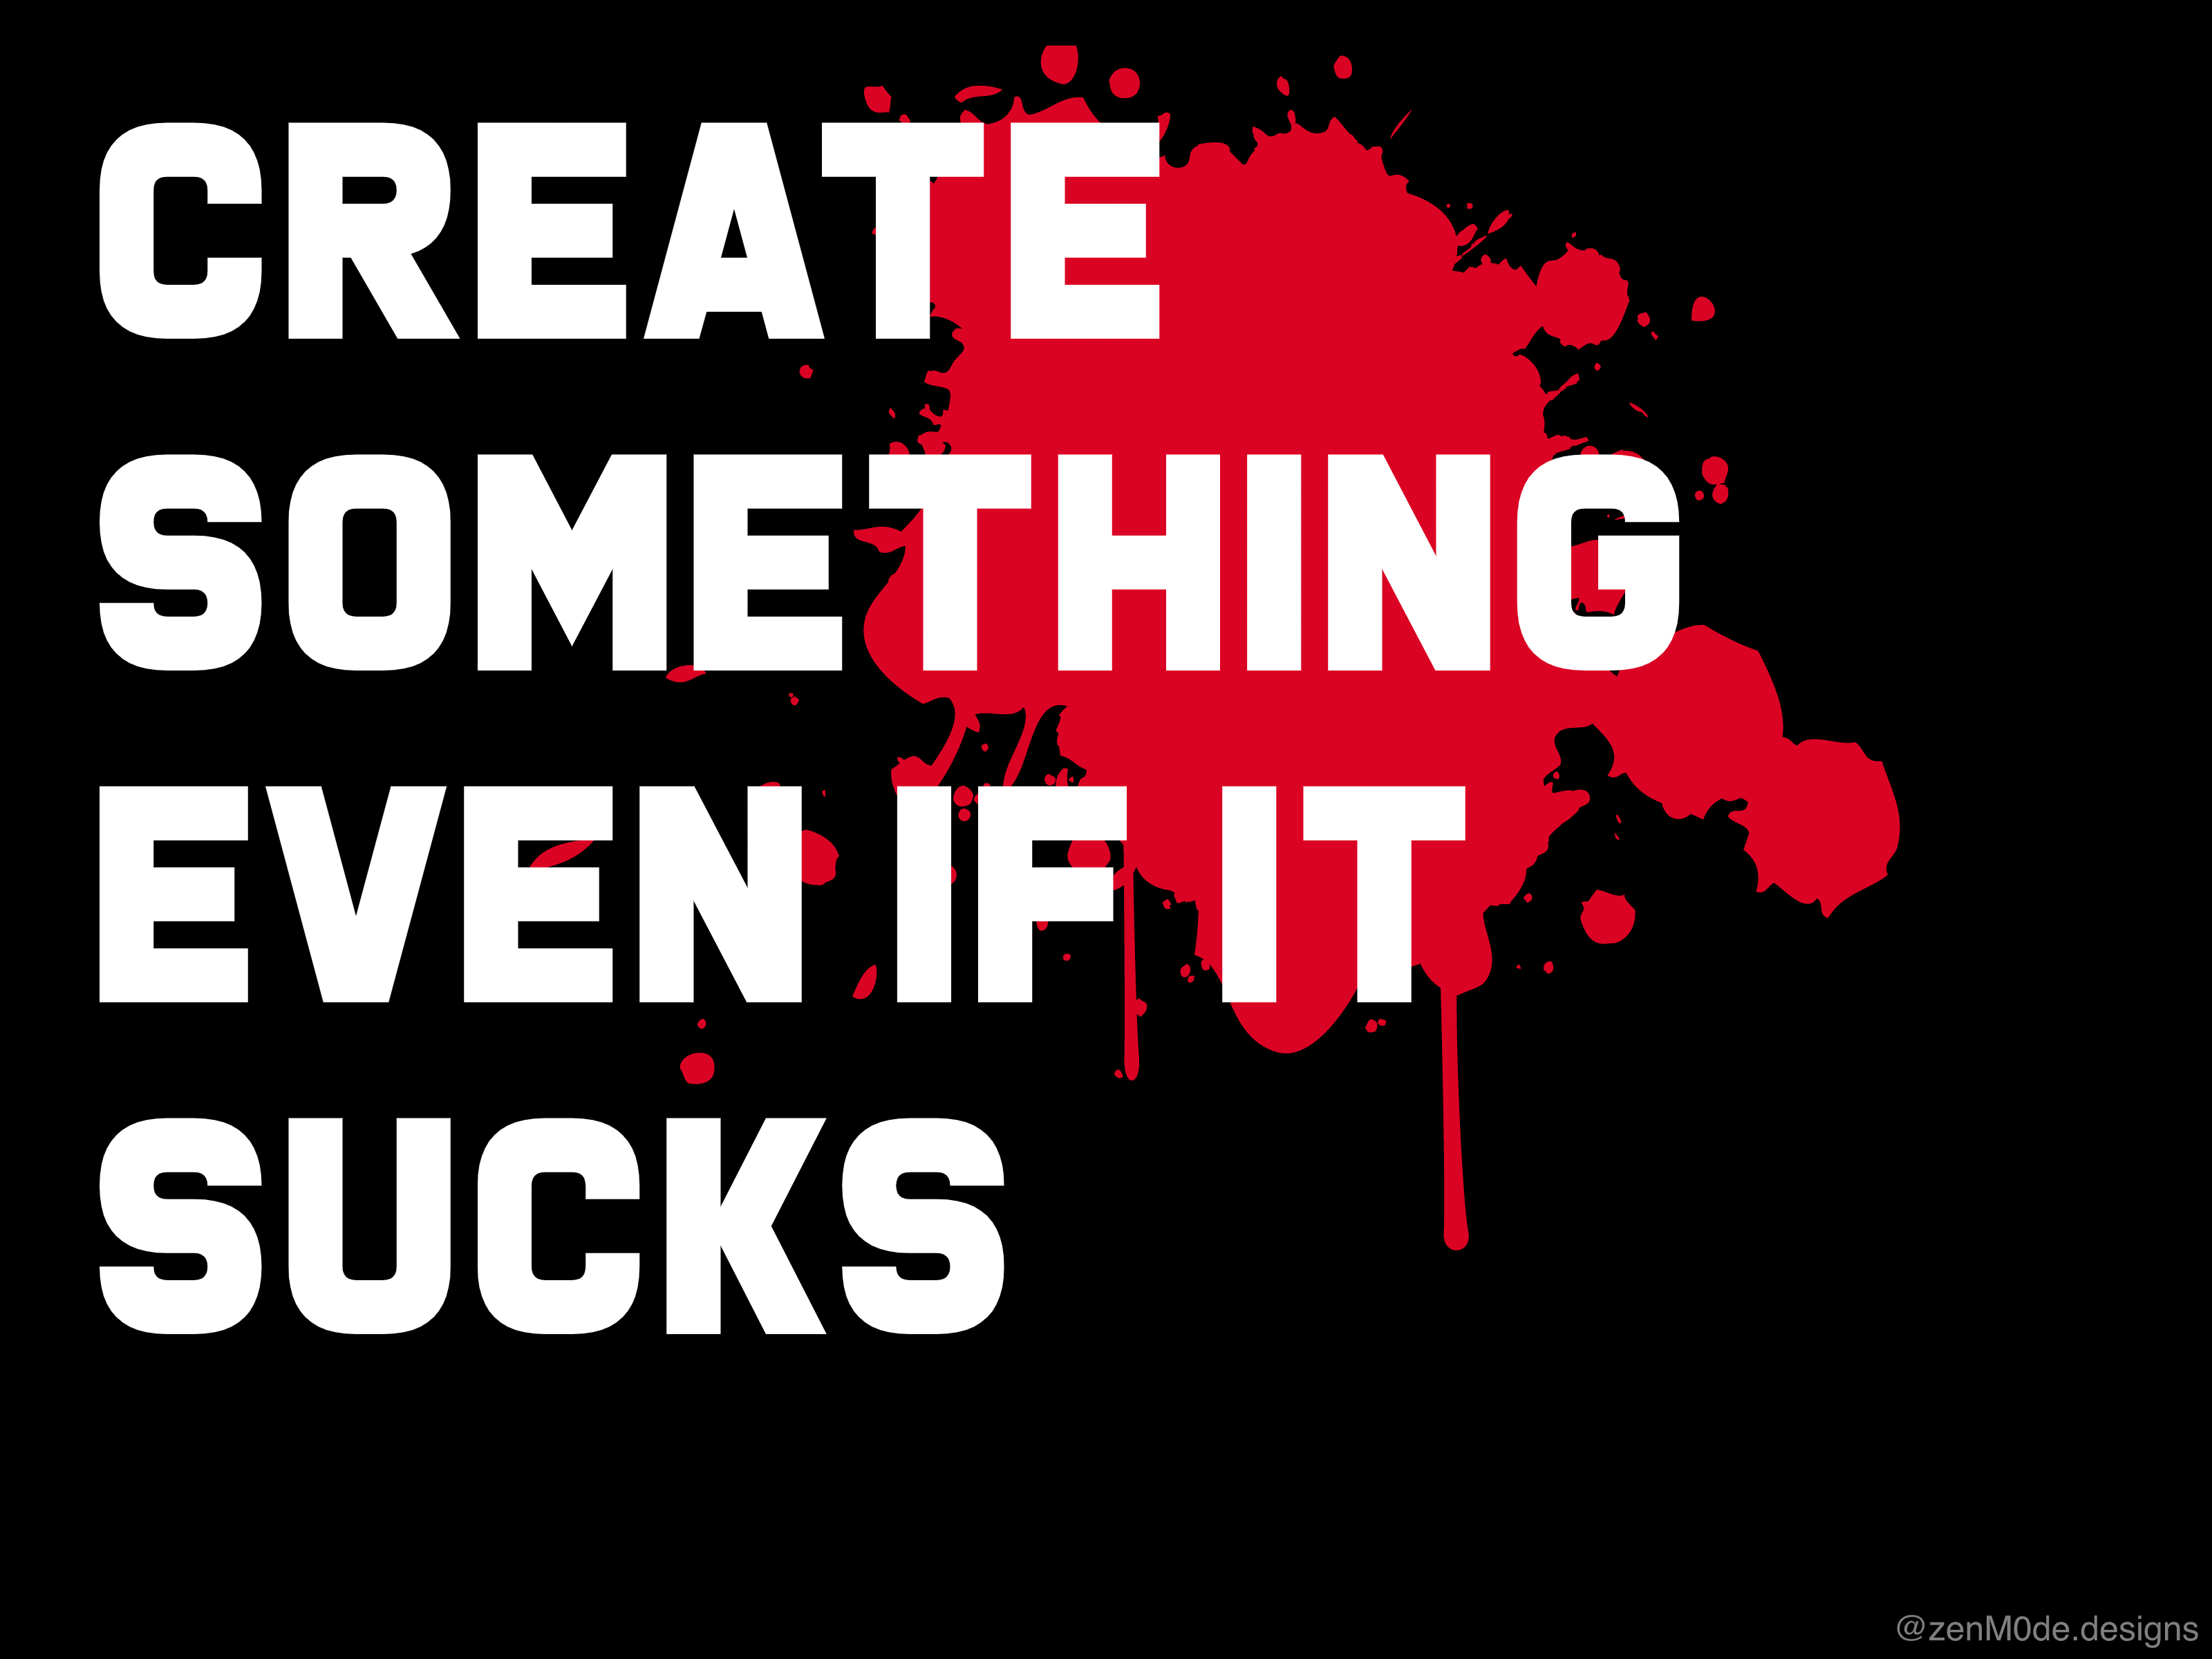 [Image] Create Something